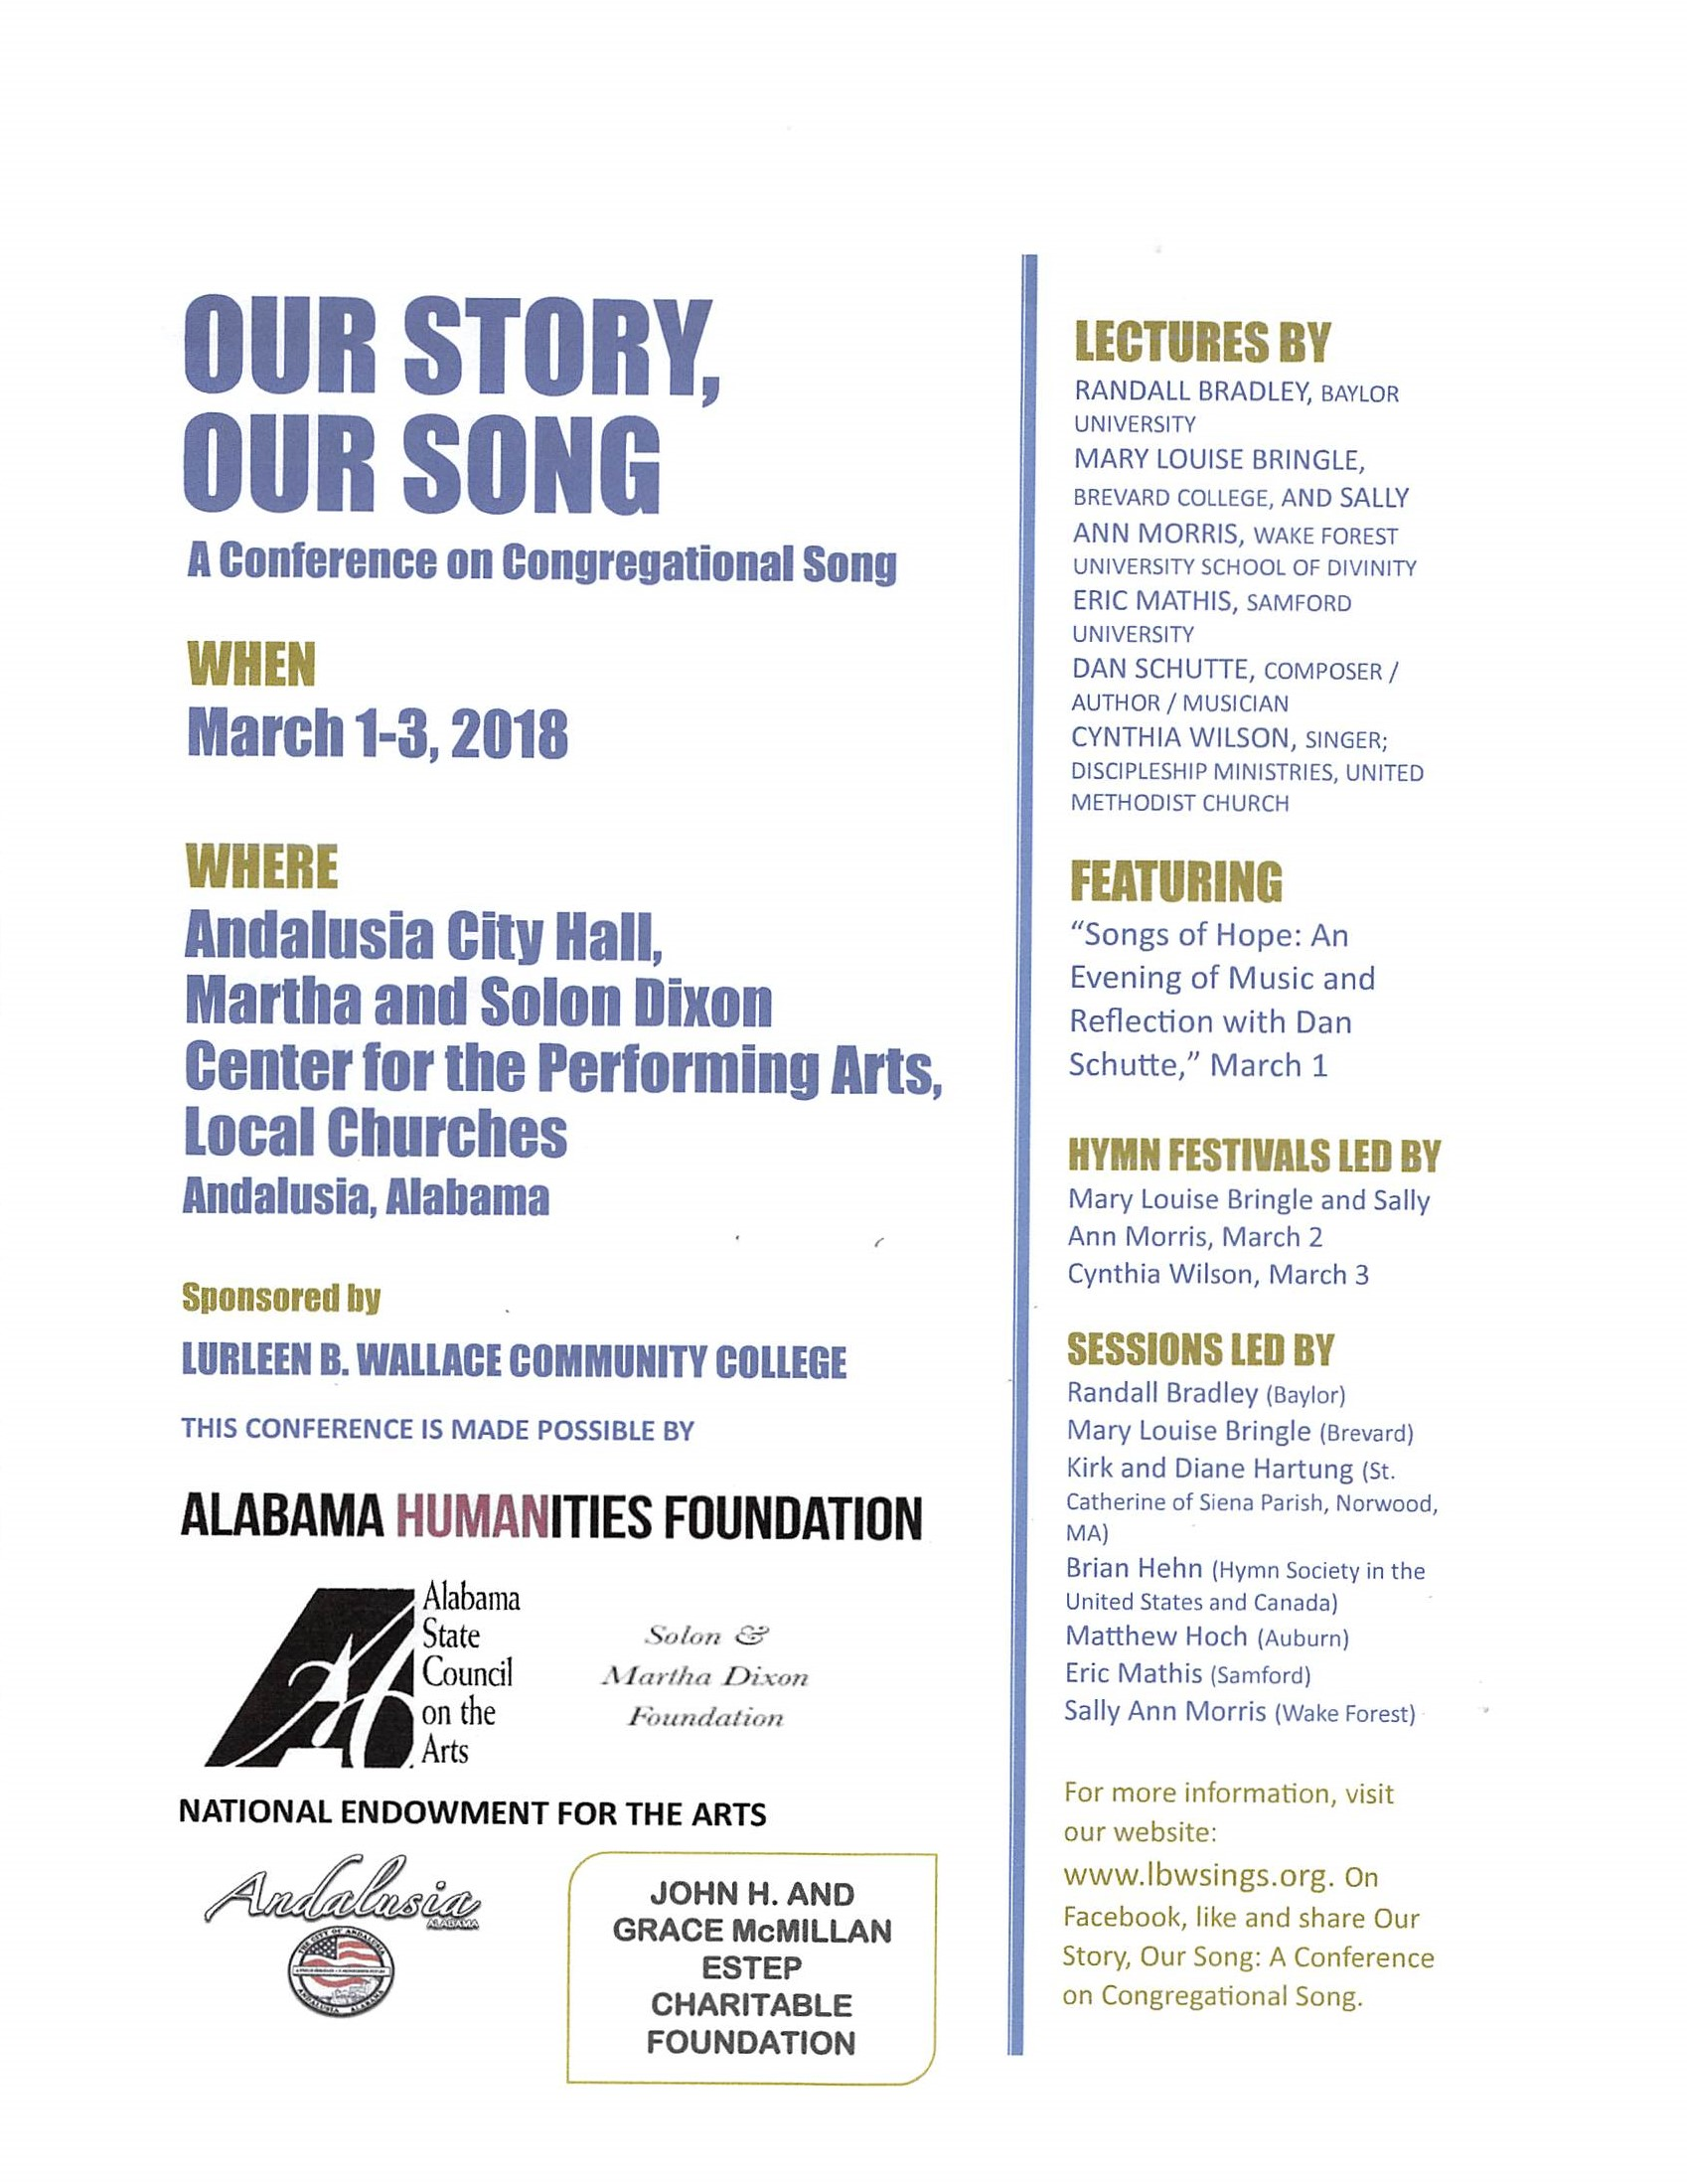 Our Story Our Song Flyer